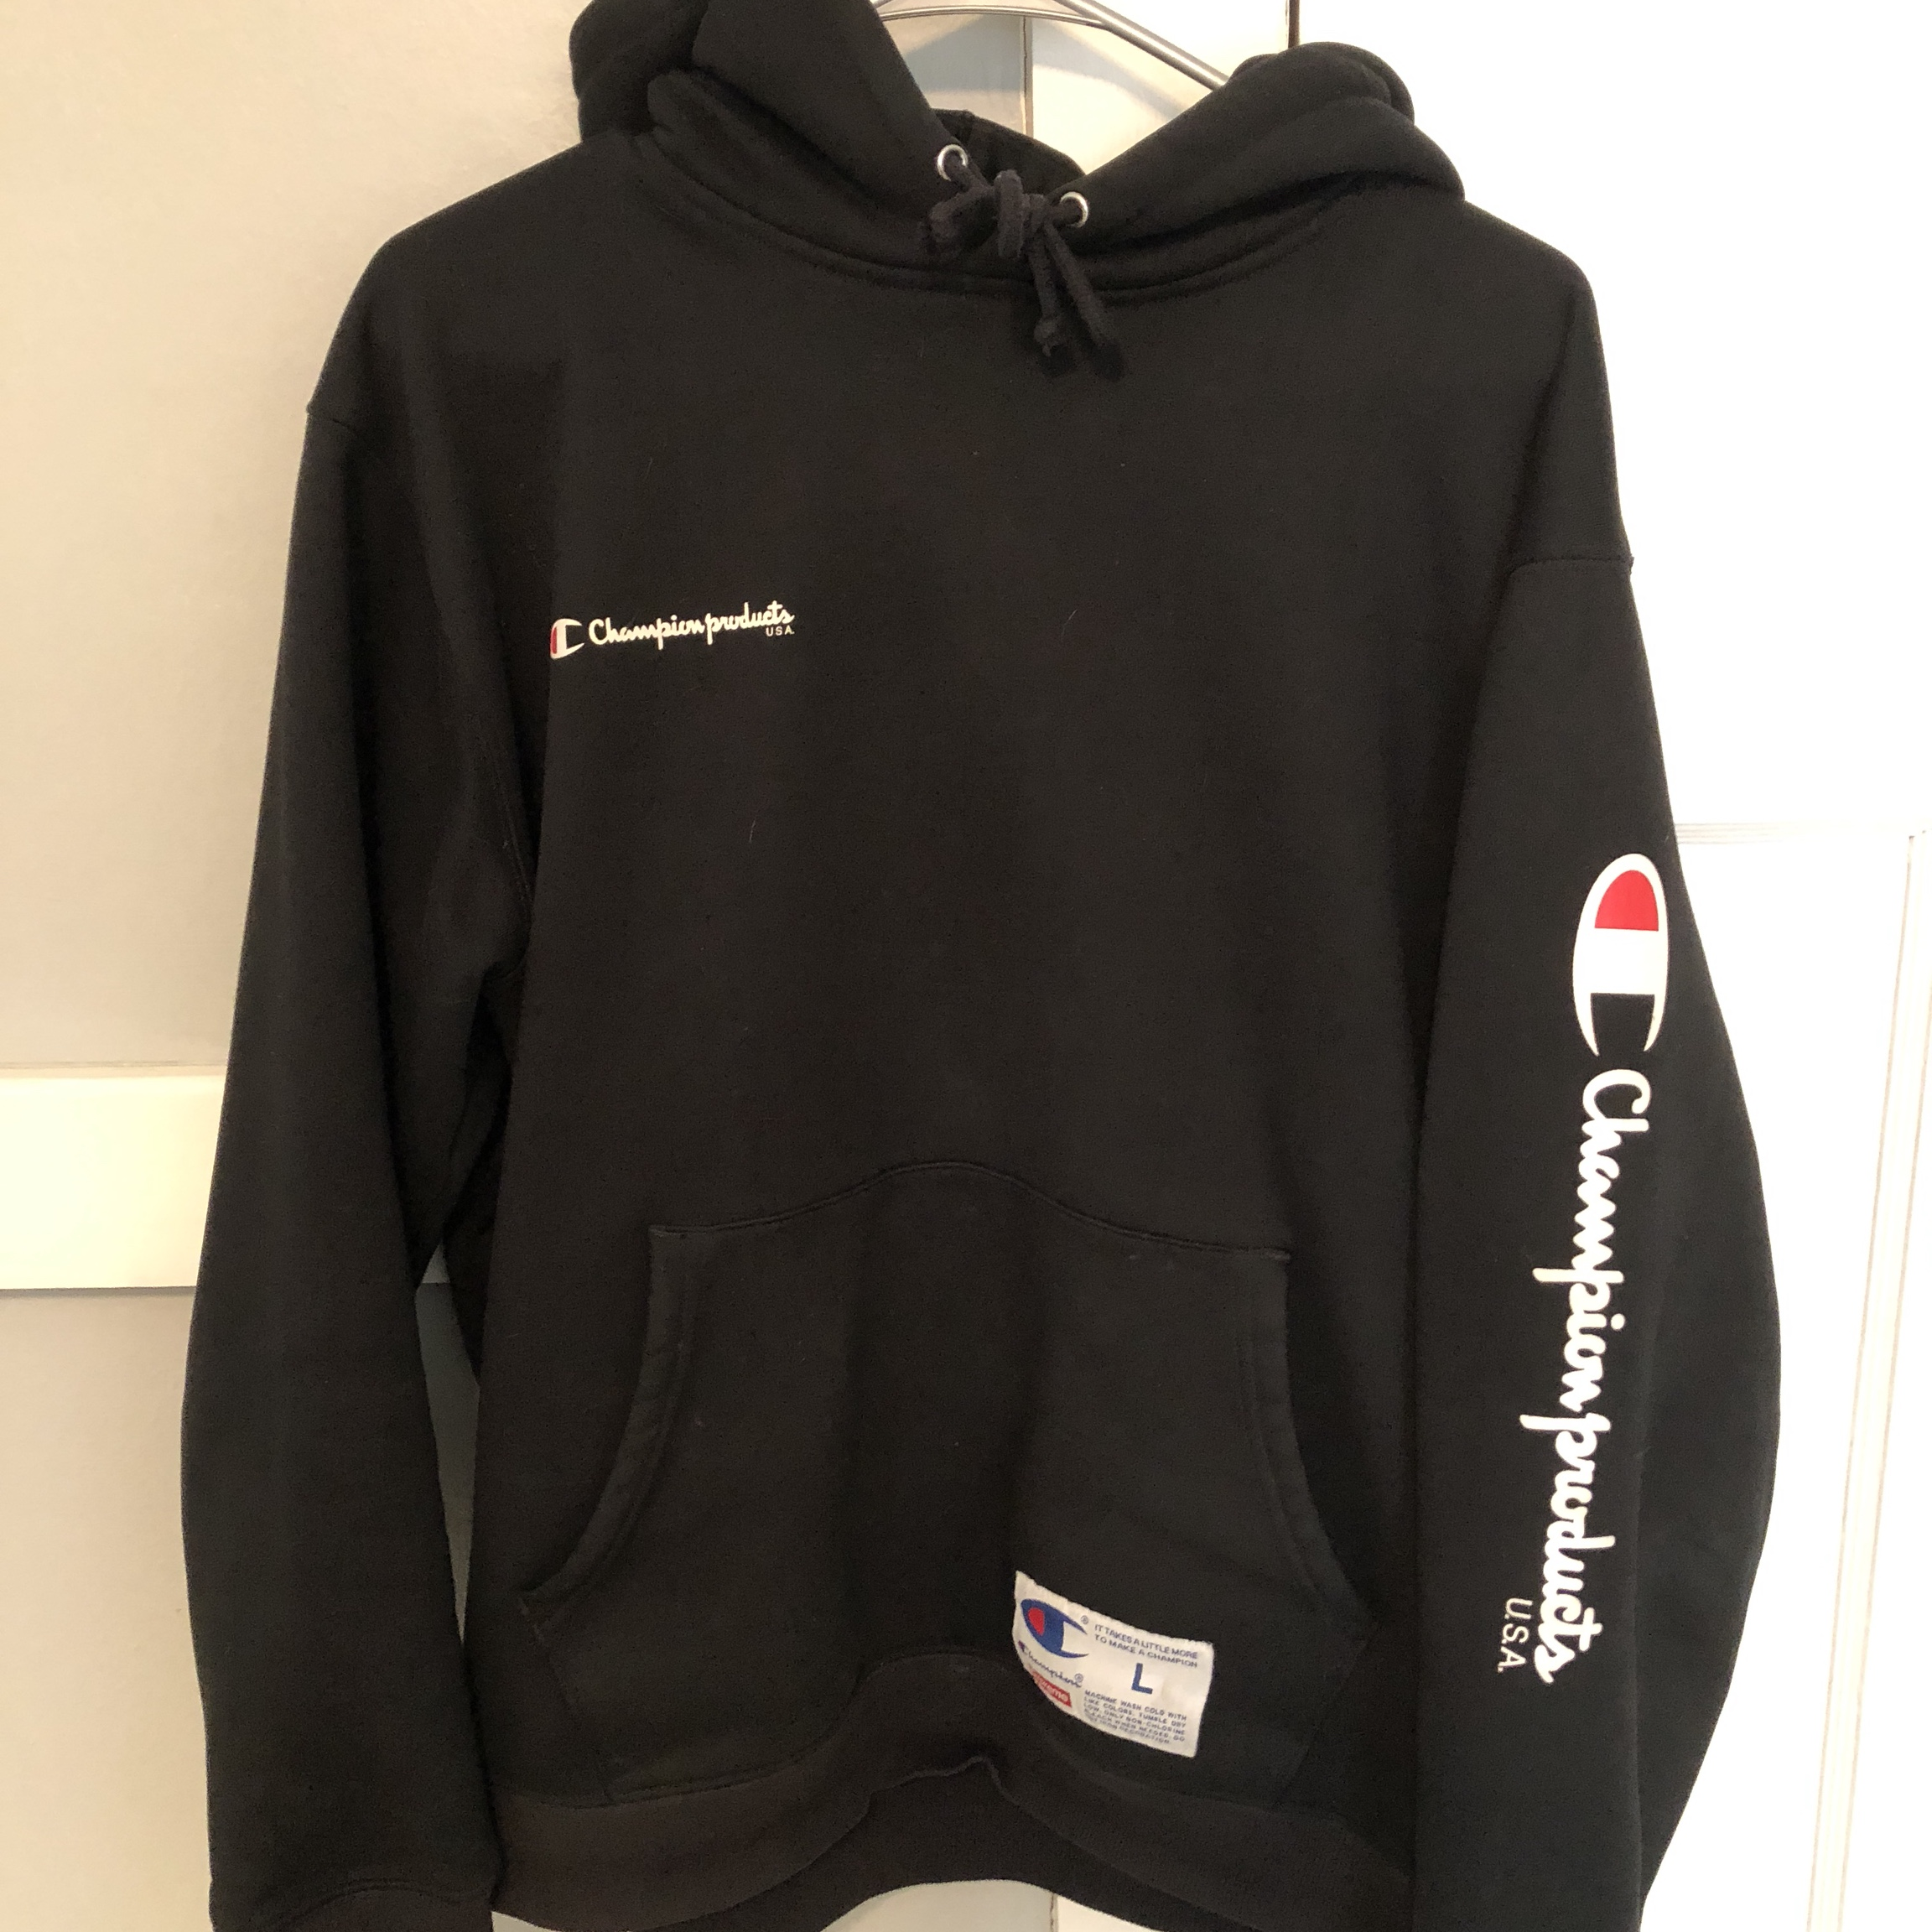 Fw Hoodie Real Champion Lightly Used Supreme 16 Depop X nONk8wXP0